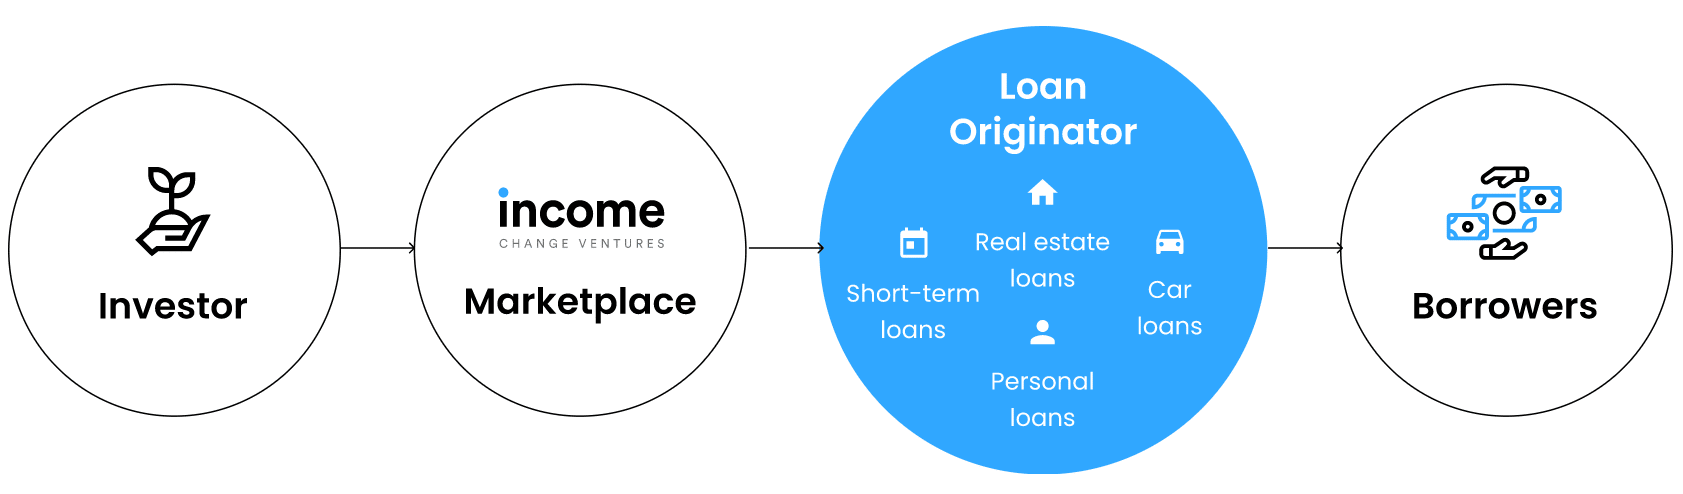 Image showing Income Marketplace business model